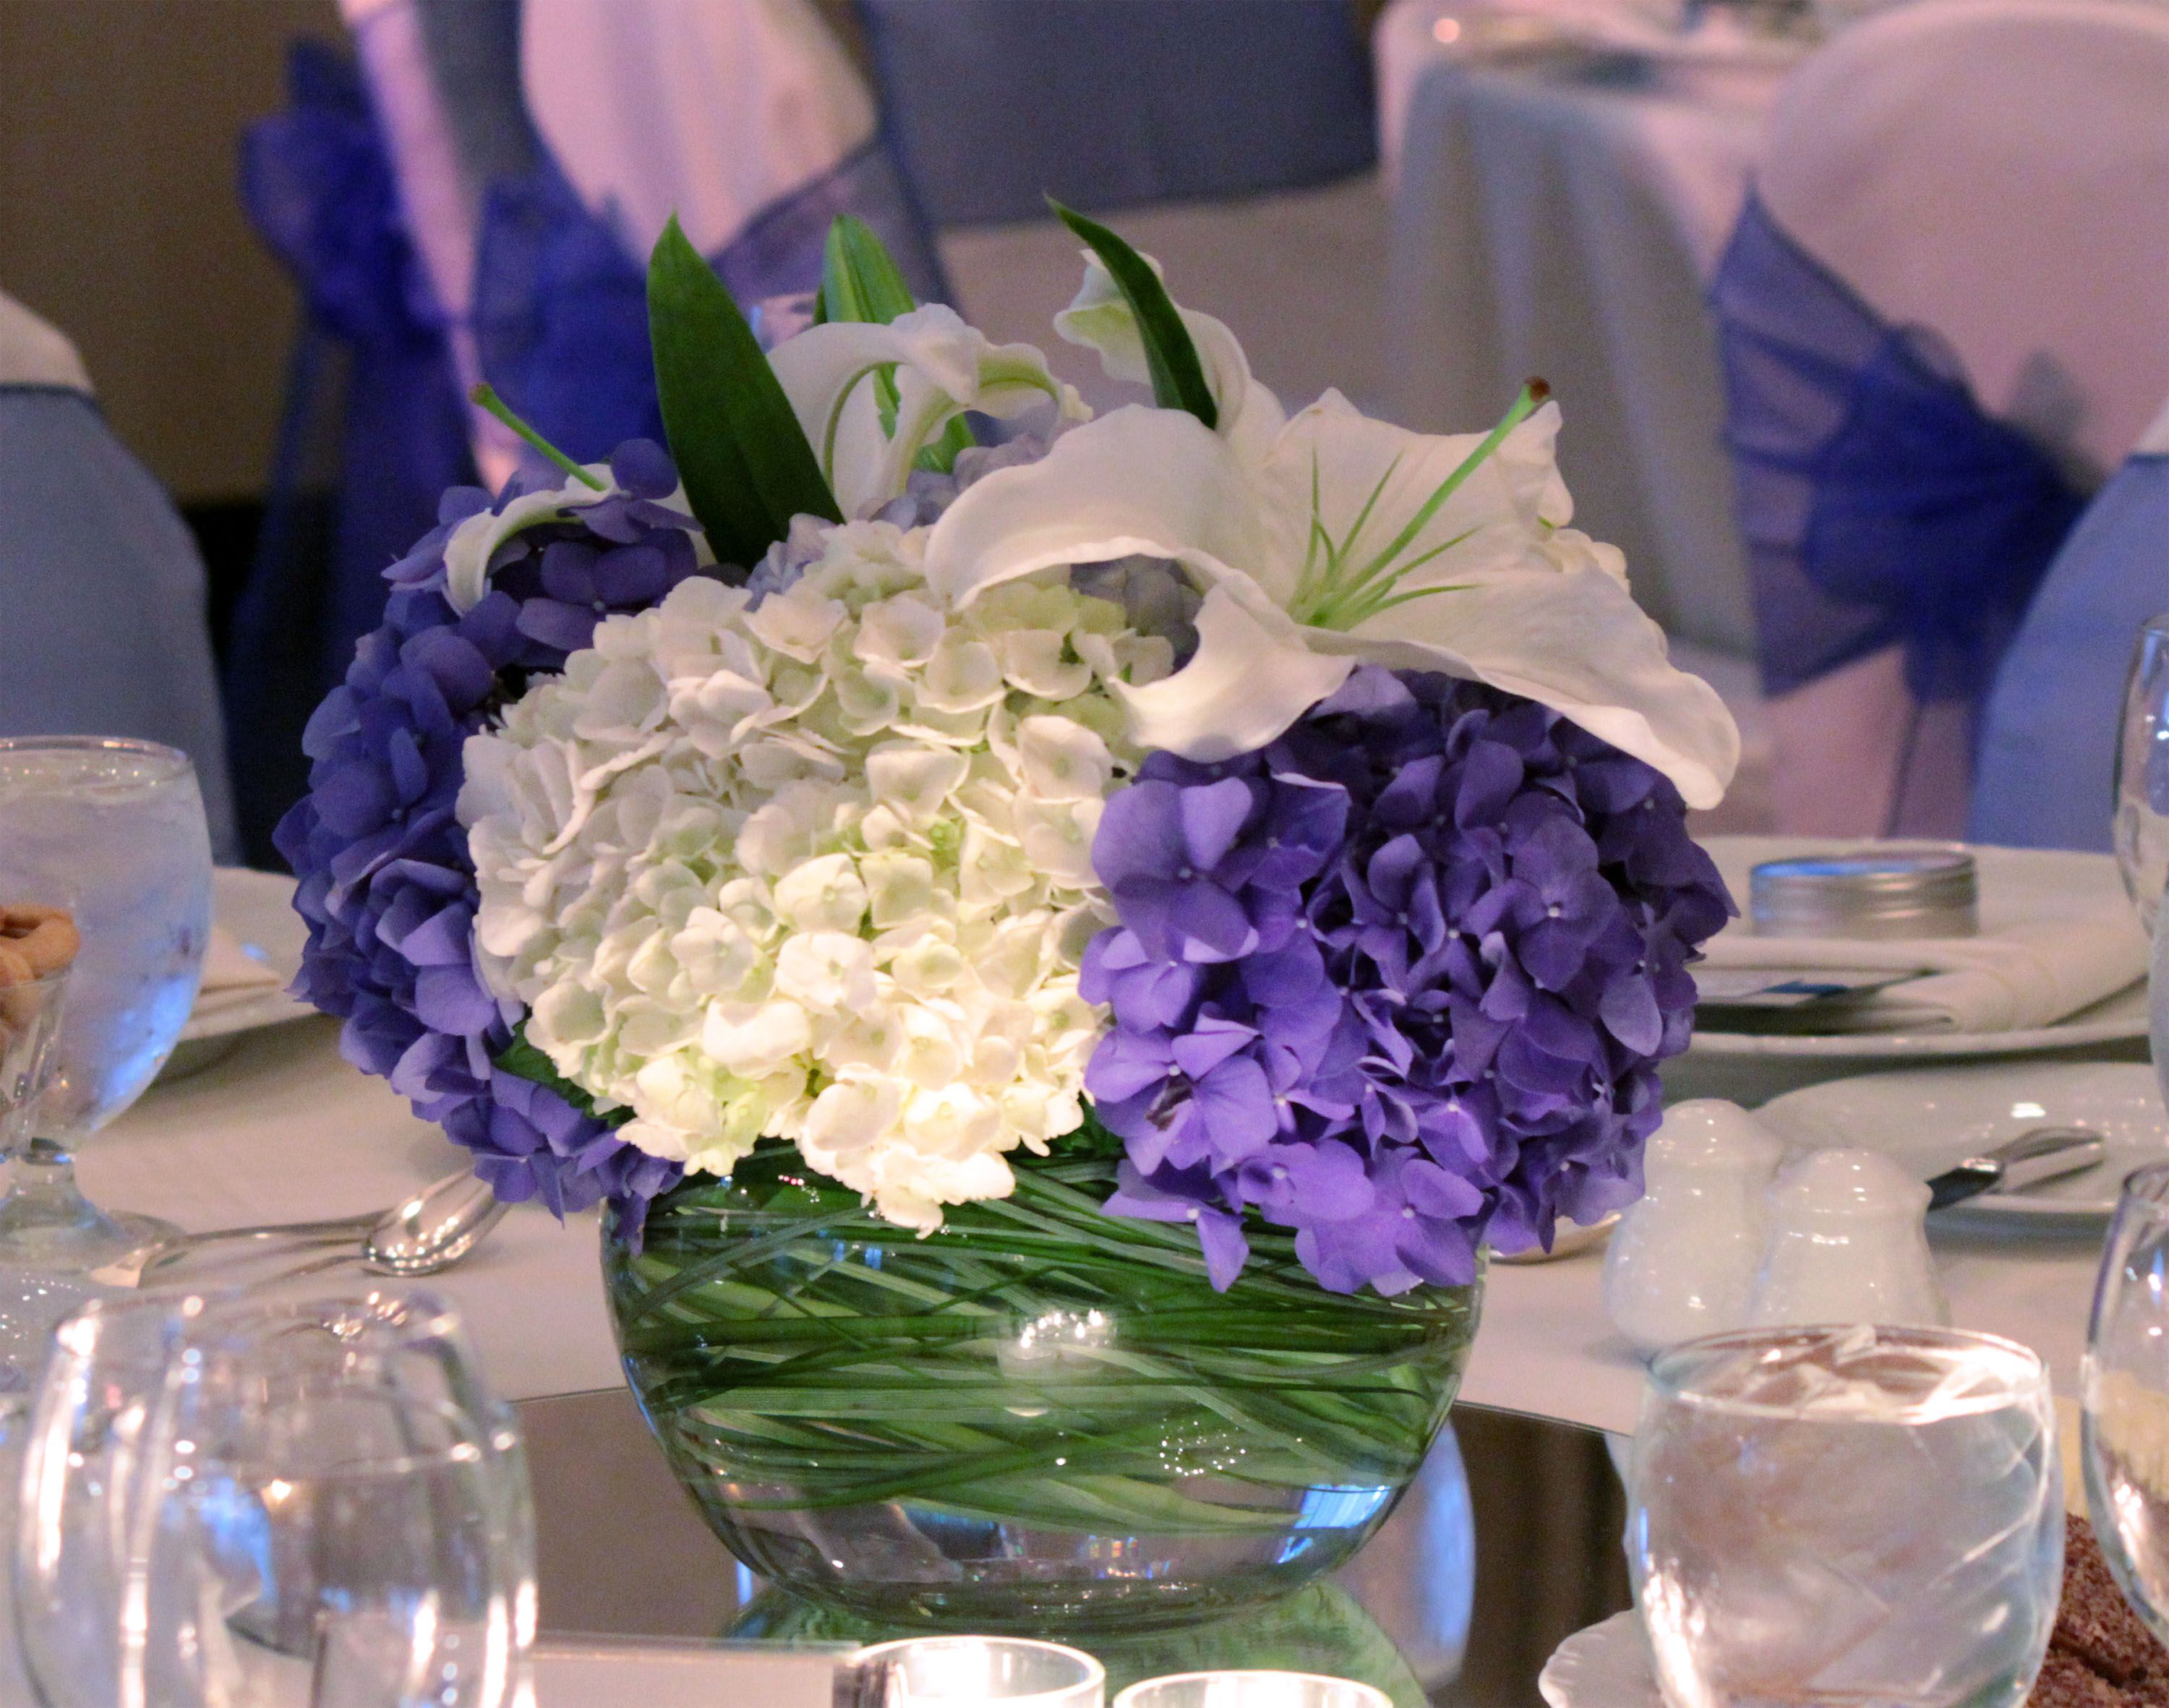 Wedding decor blue and white  Hydrangea Centerpiece Ideas for Weddings  Deep Blue Wedding